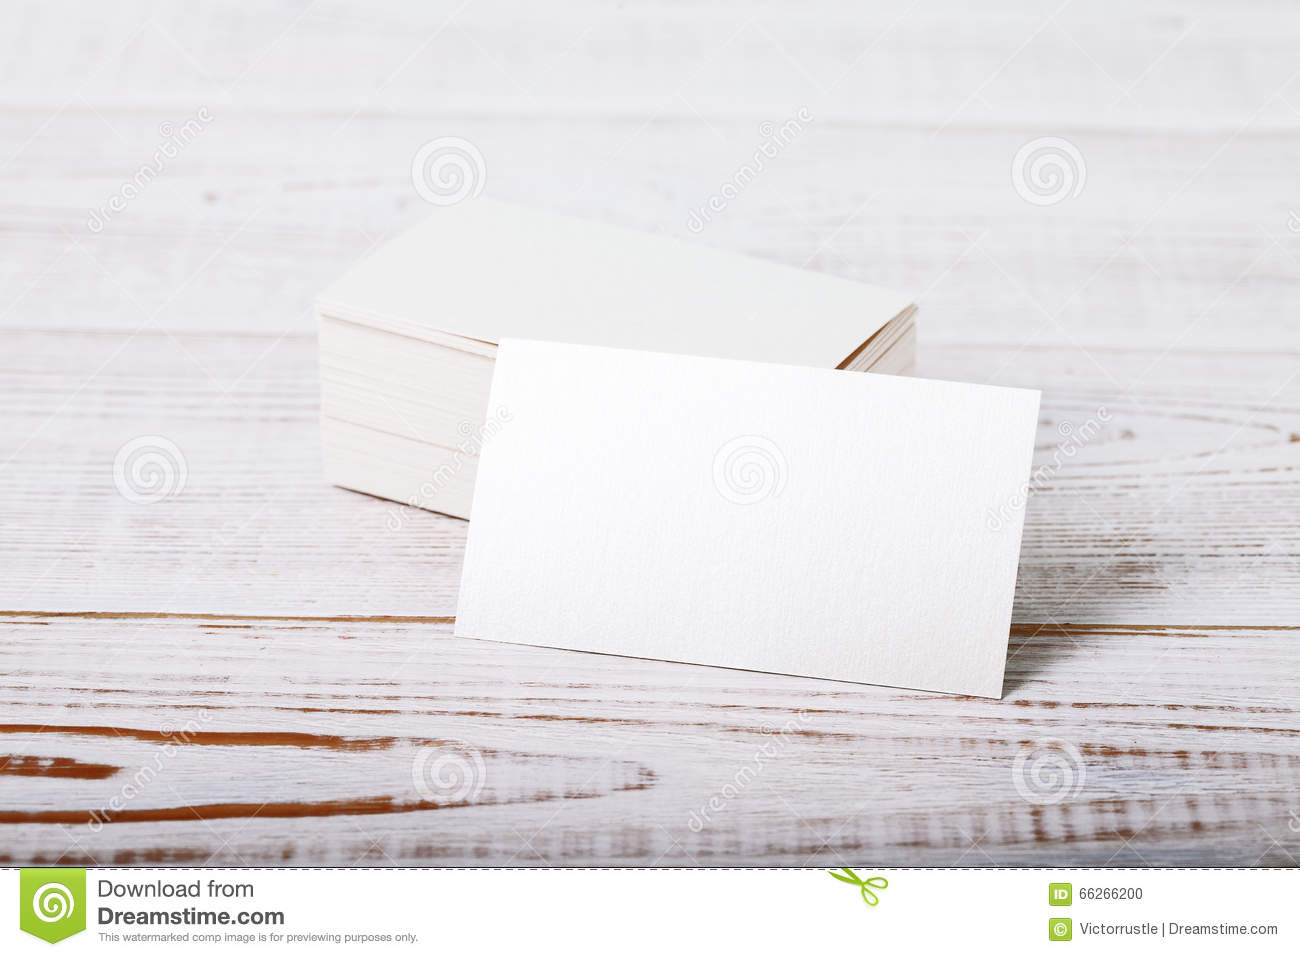 cotton paper with no watermark